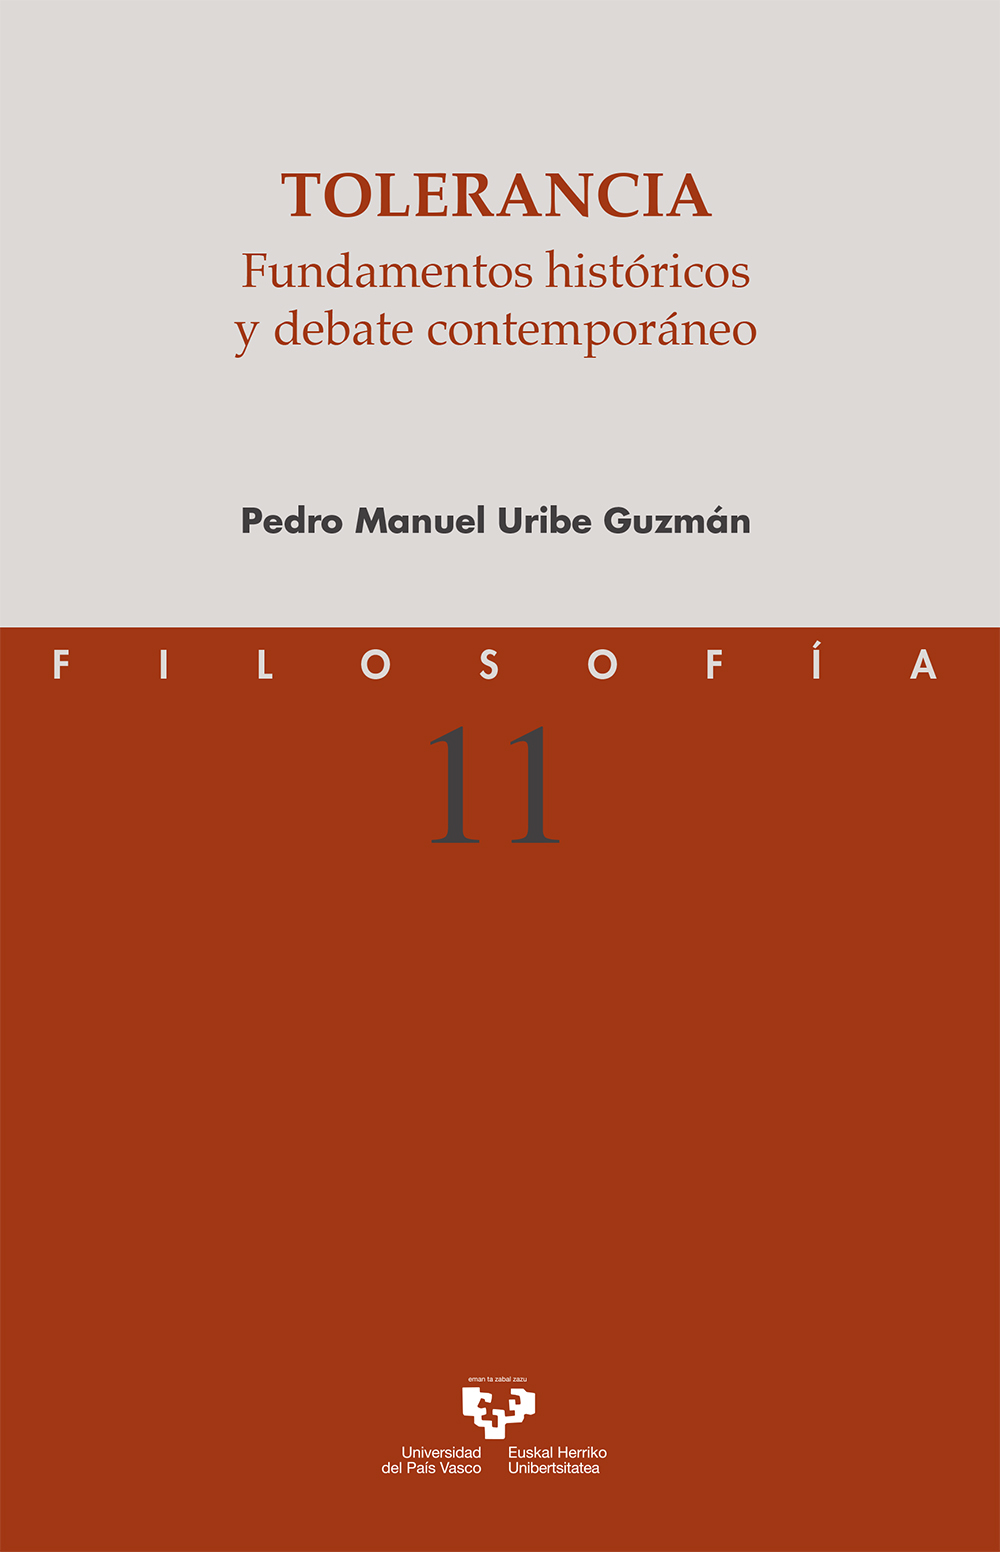 Tolerancia. Fundamentos históricos y debate contemporáneo